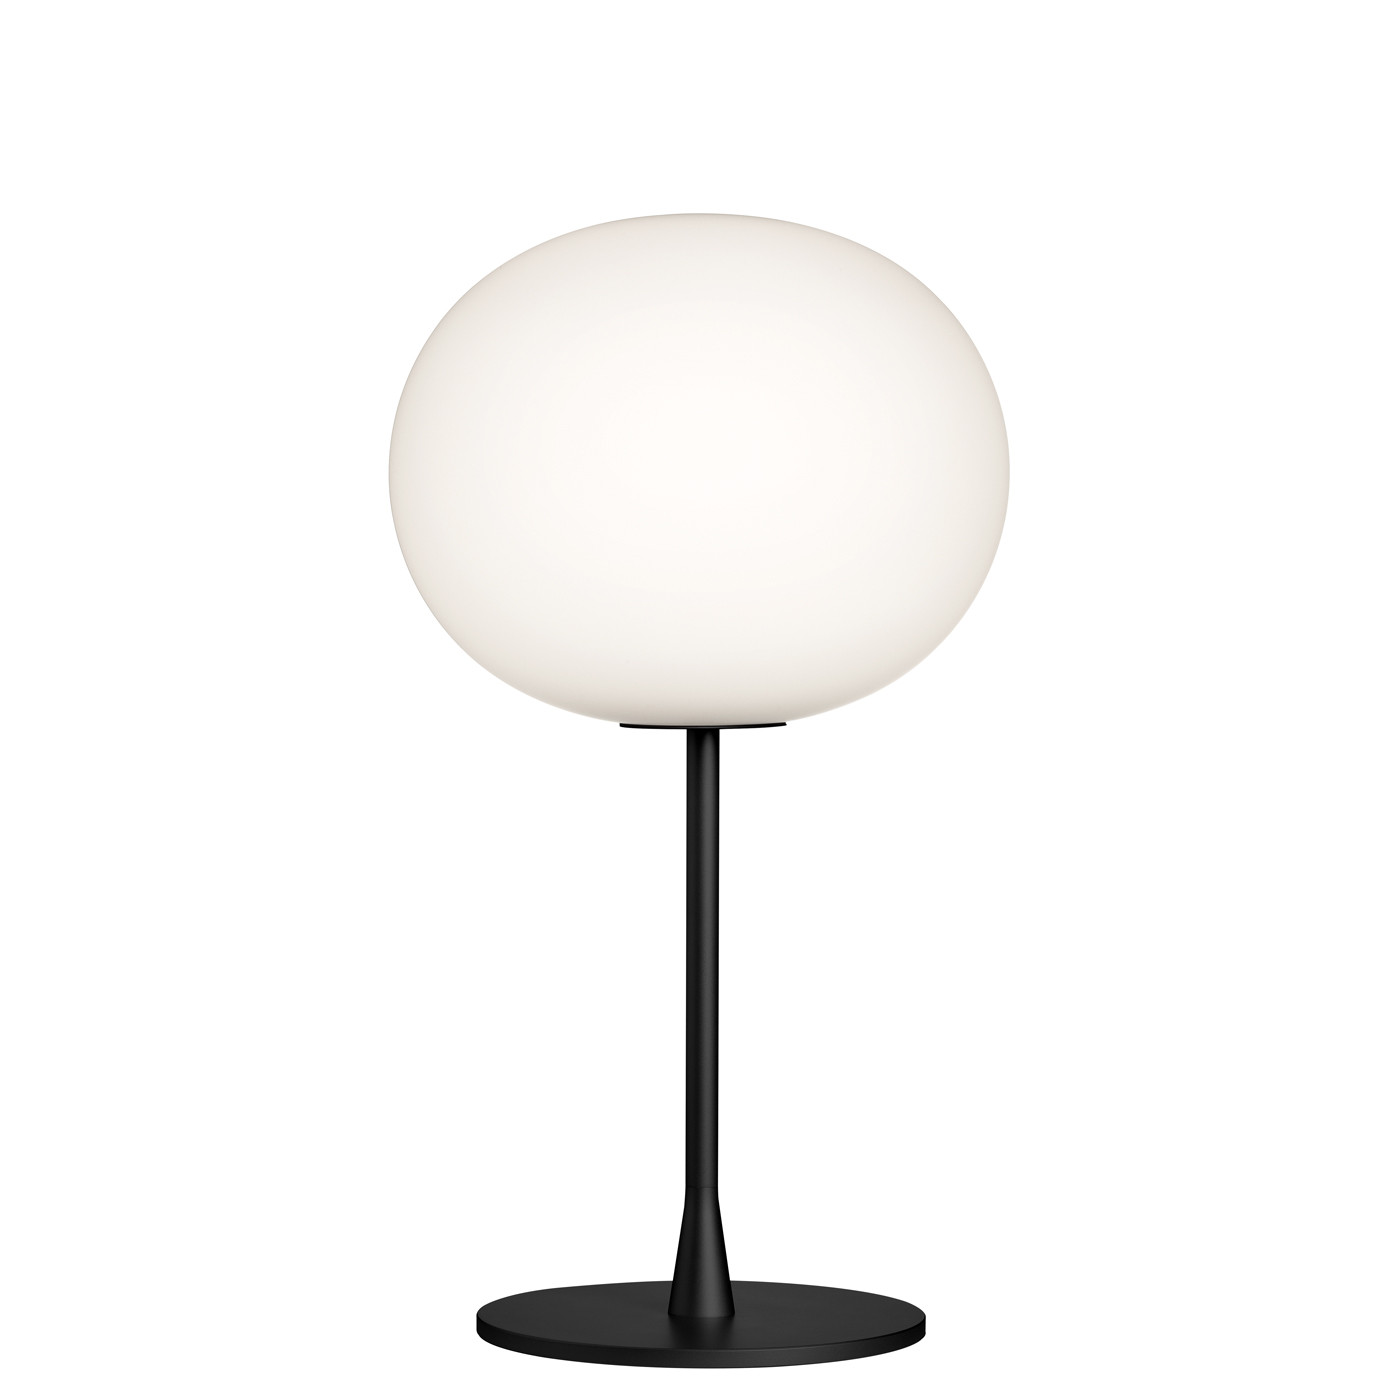 Flos Glo-Ball T1